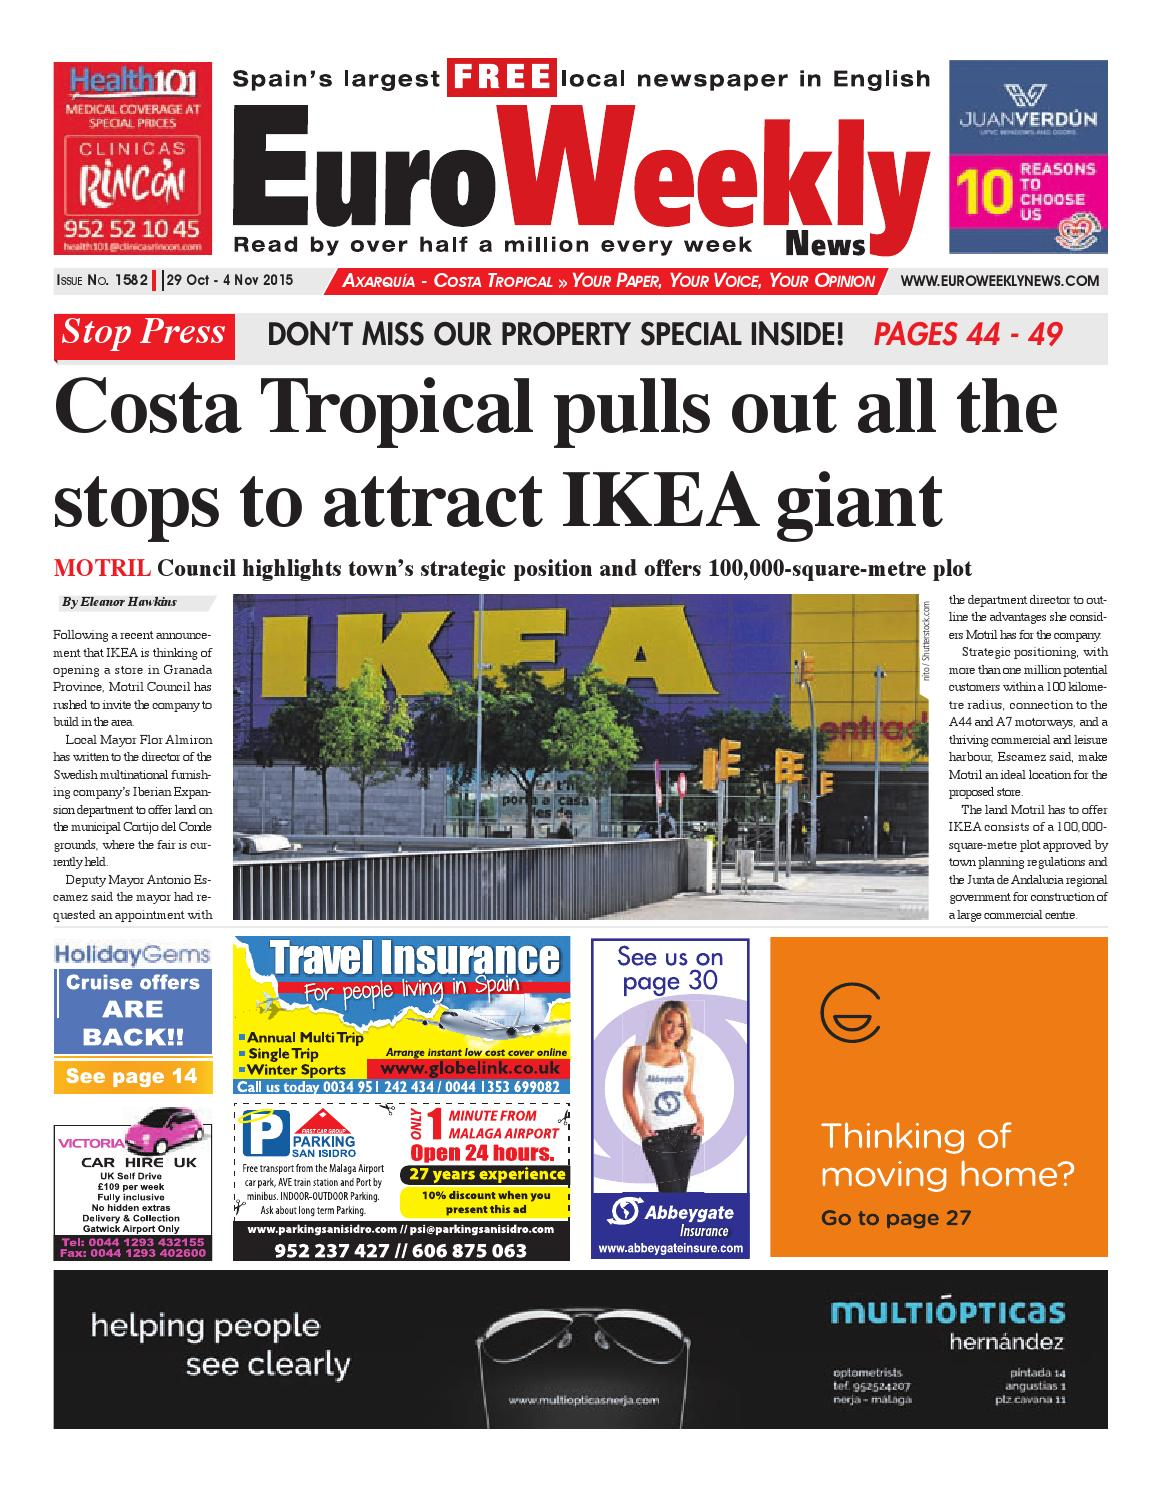 163efe1f536a98 Euro Weekly News - Axarquia 29 October - 4 November 2015 Issue 1582 ...